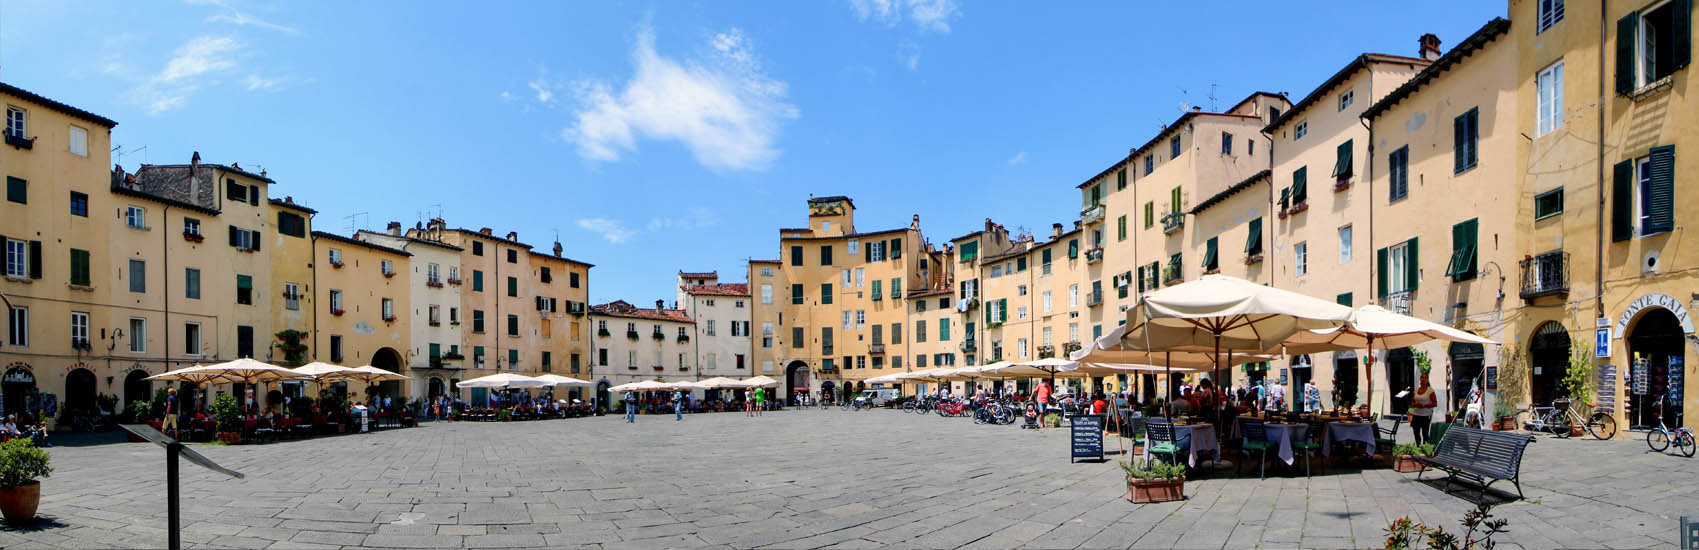 Savings to Italy with Globus Vacations! 2